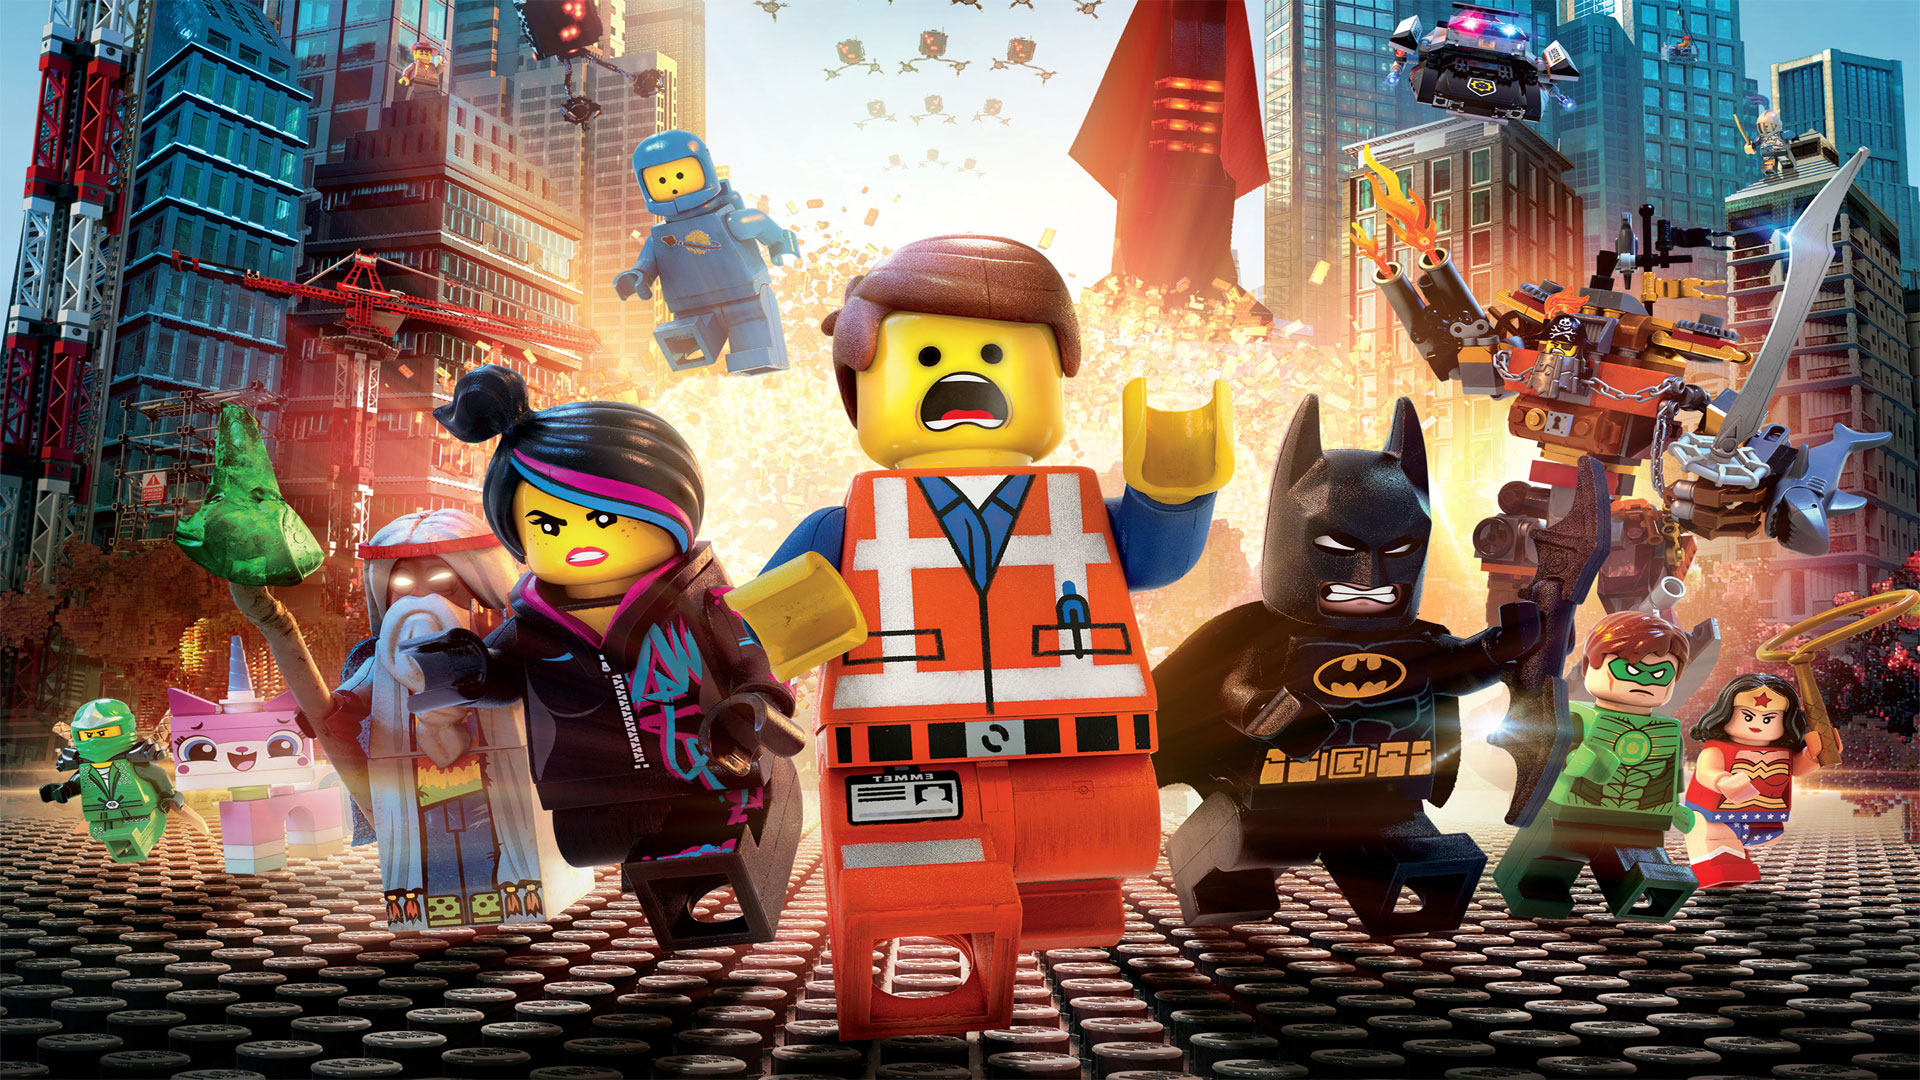 Free Download Lego Movie Backgrounds Download Hd Wallpapers Images, Photos, Reviews